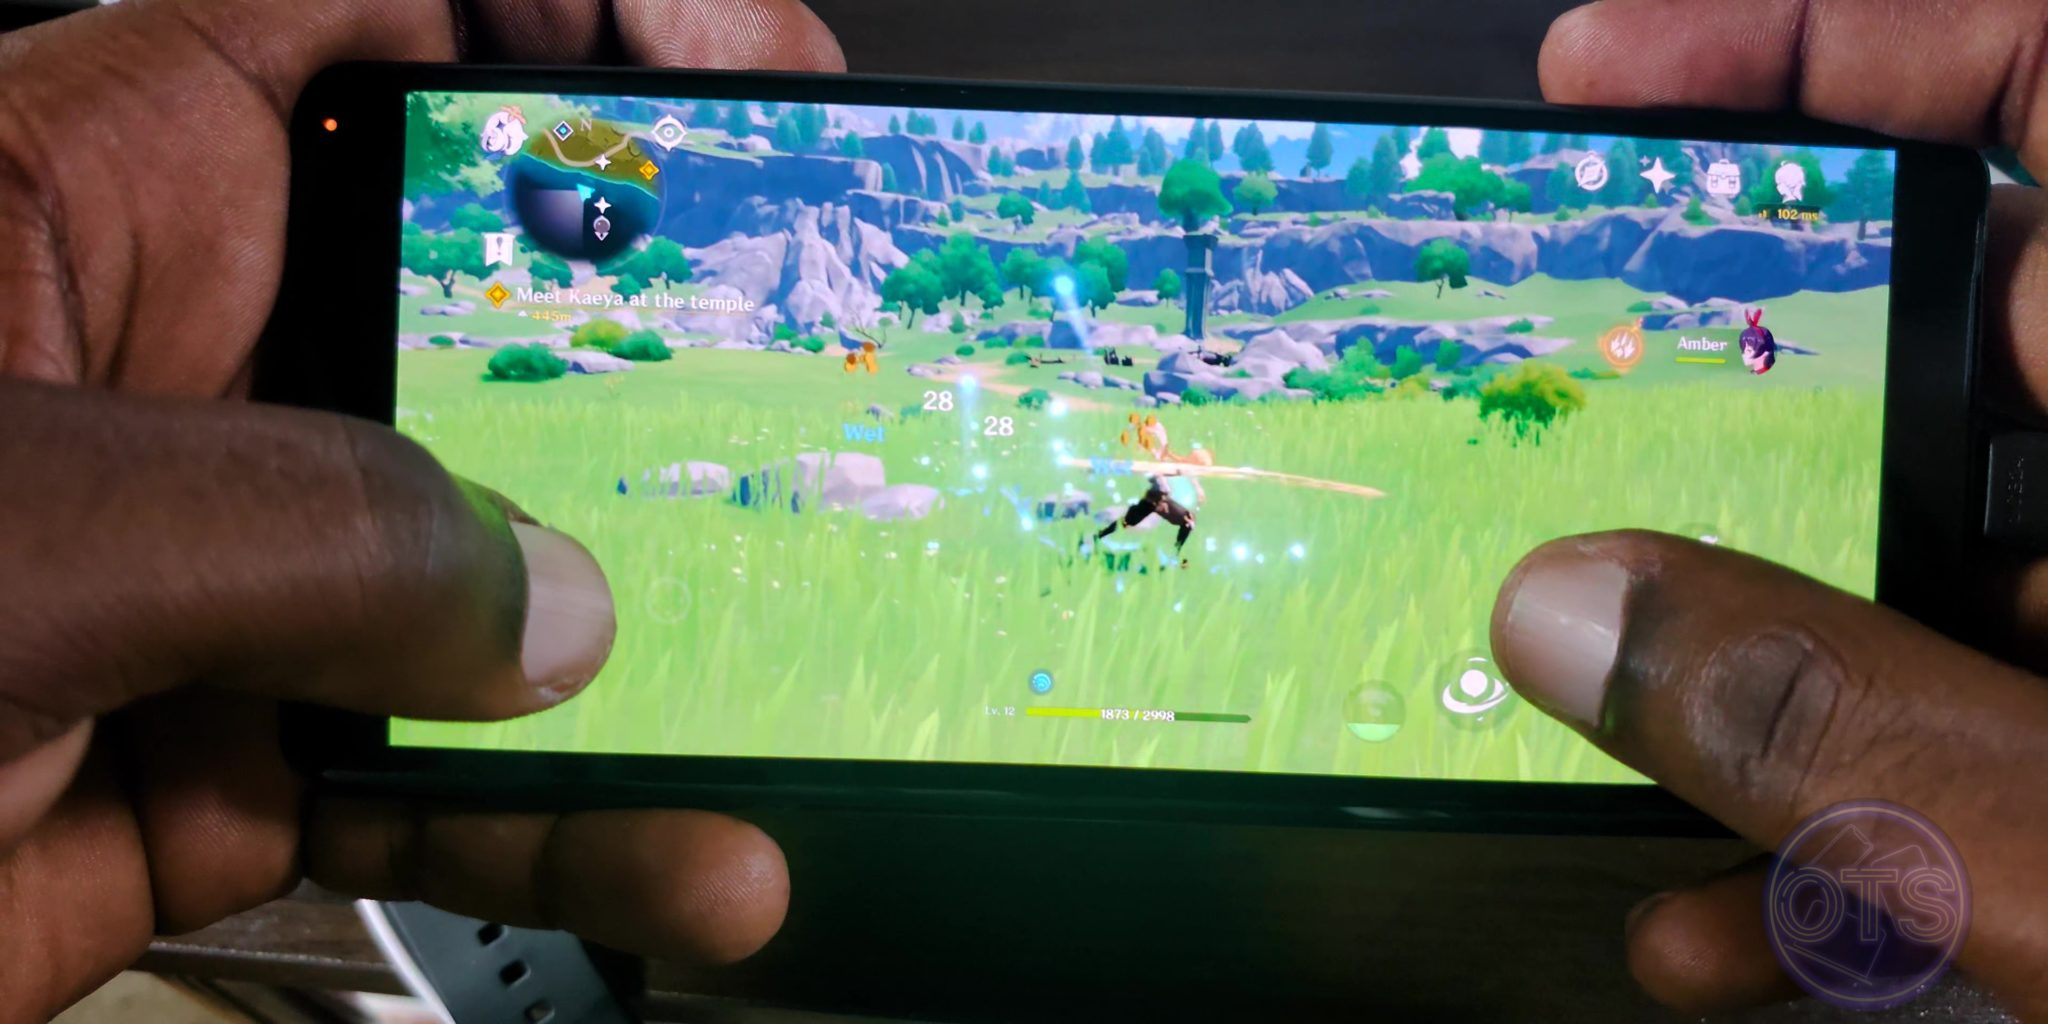 xperia 1 ii gameplay